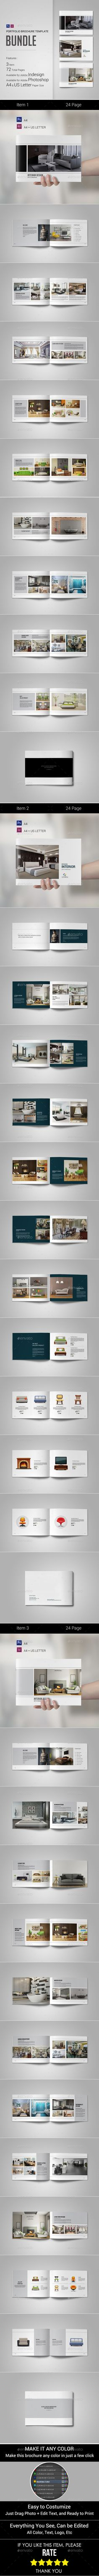 Interior Brochure Bundle — Photoshop PSD #customizable #minimal • Available here → https://graphicriver.net/item/interior-brochure-bundle/16166076?ref=pxcr